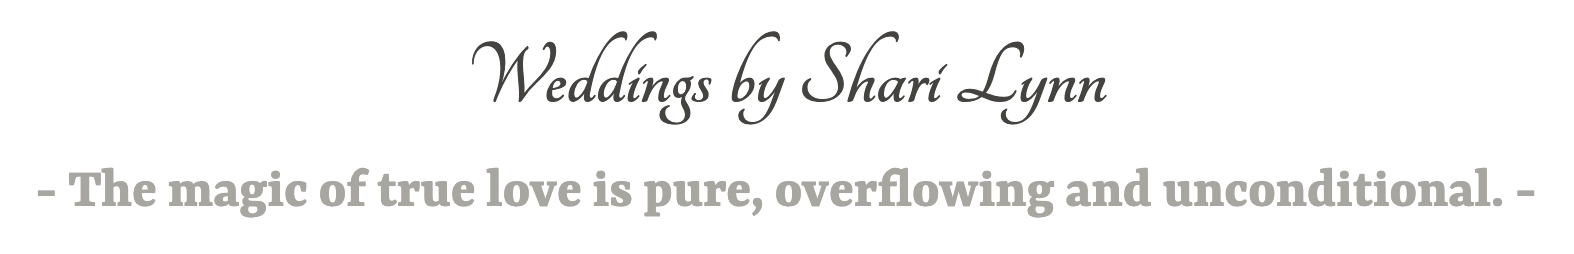 Wedding Officiant | Ordained Minister | Marriage Officiant | Weddings by Shari